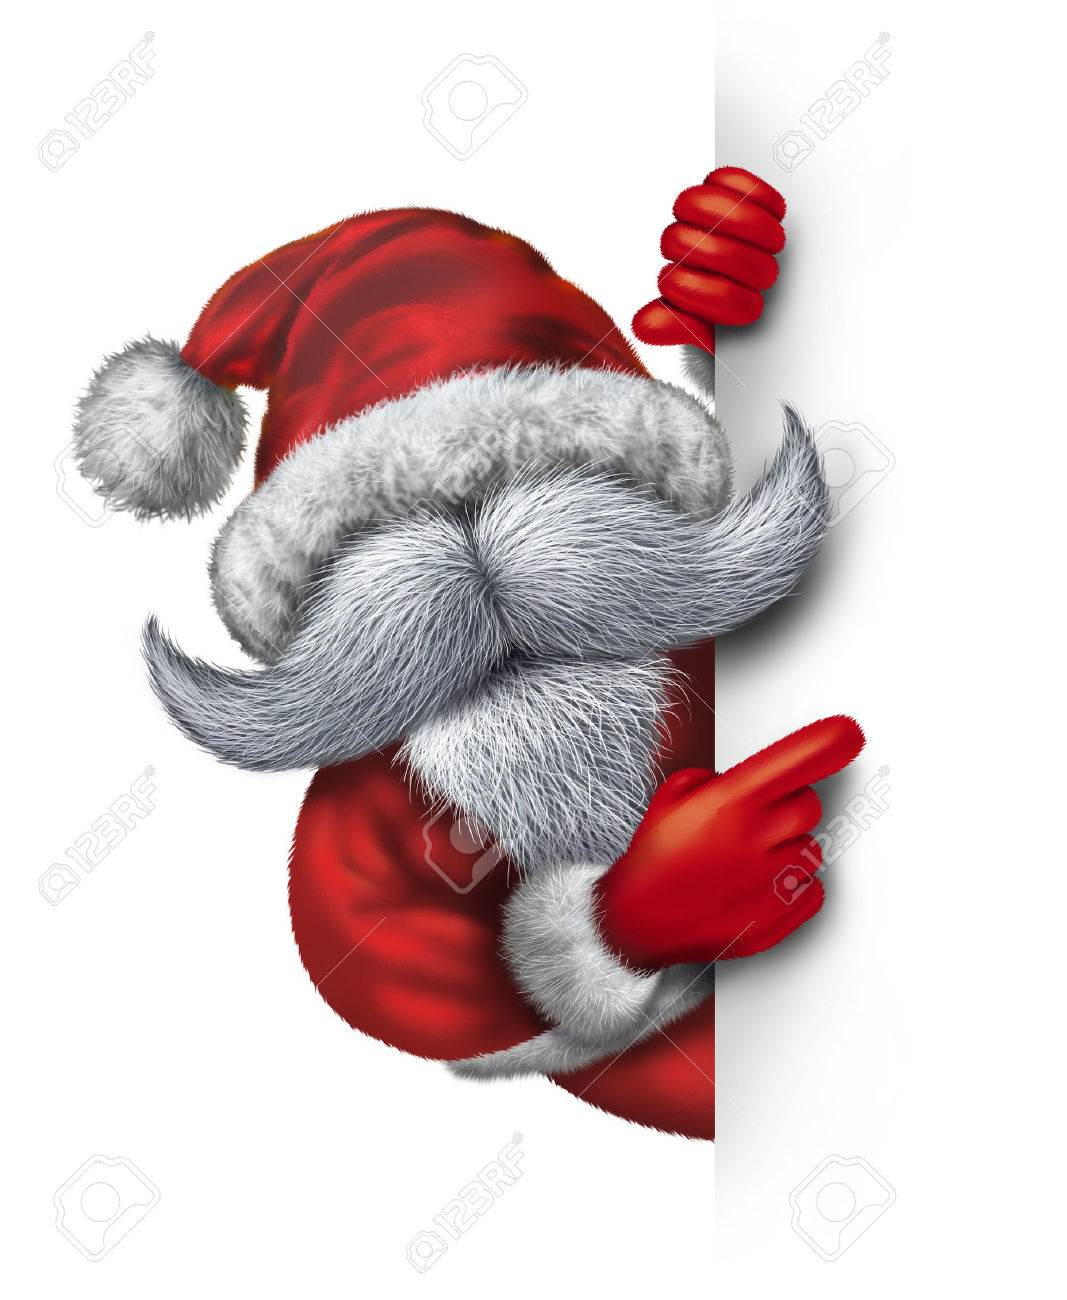 Santa Claus Holding A Vertical Blank Sign As Mascot Concept With Cheerful Huge White